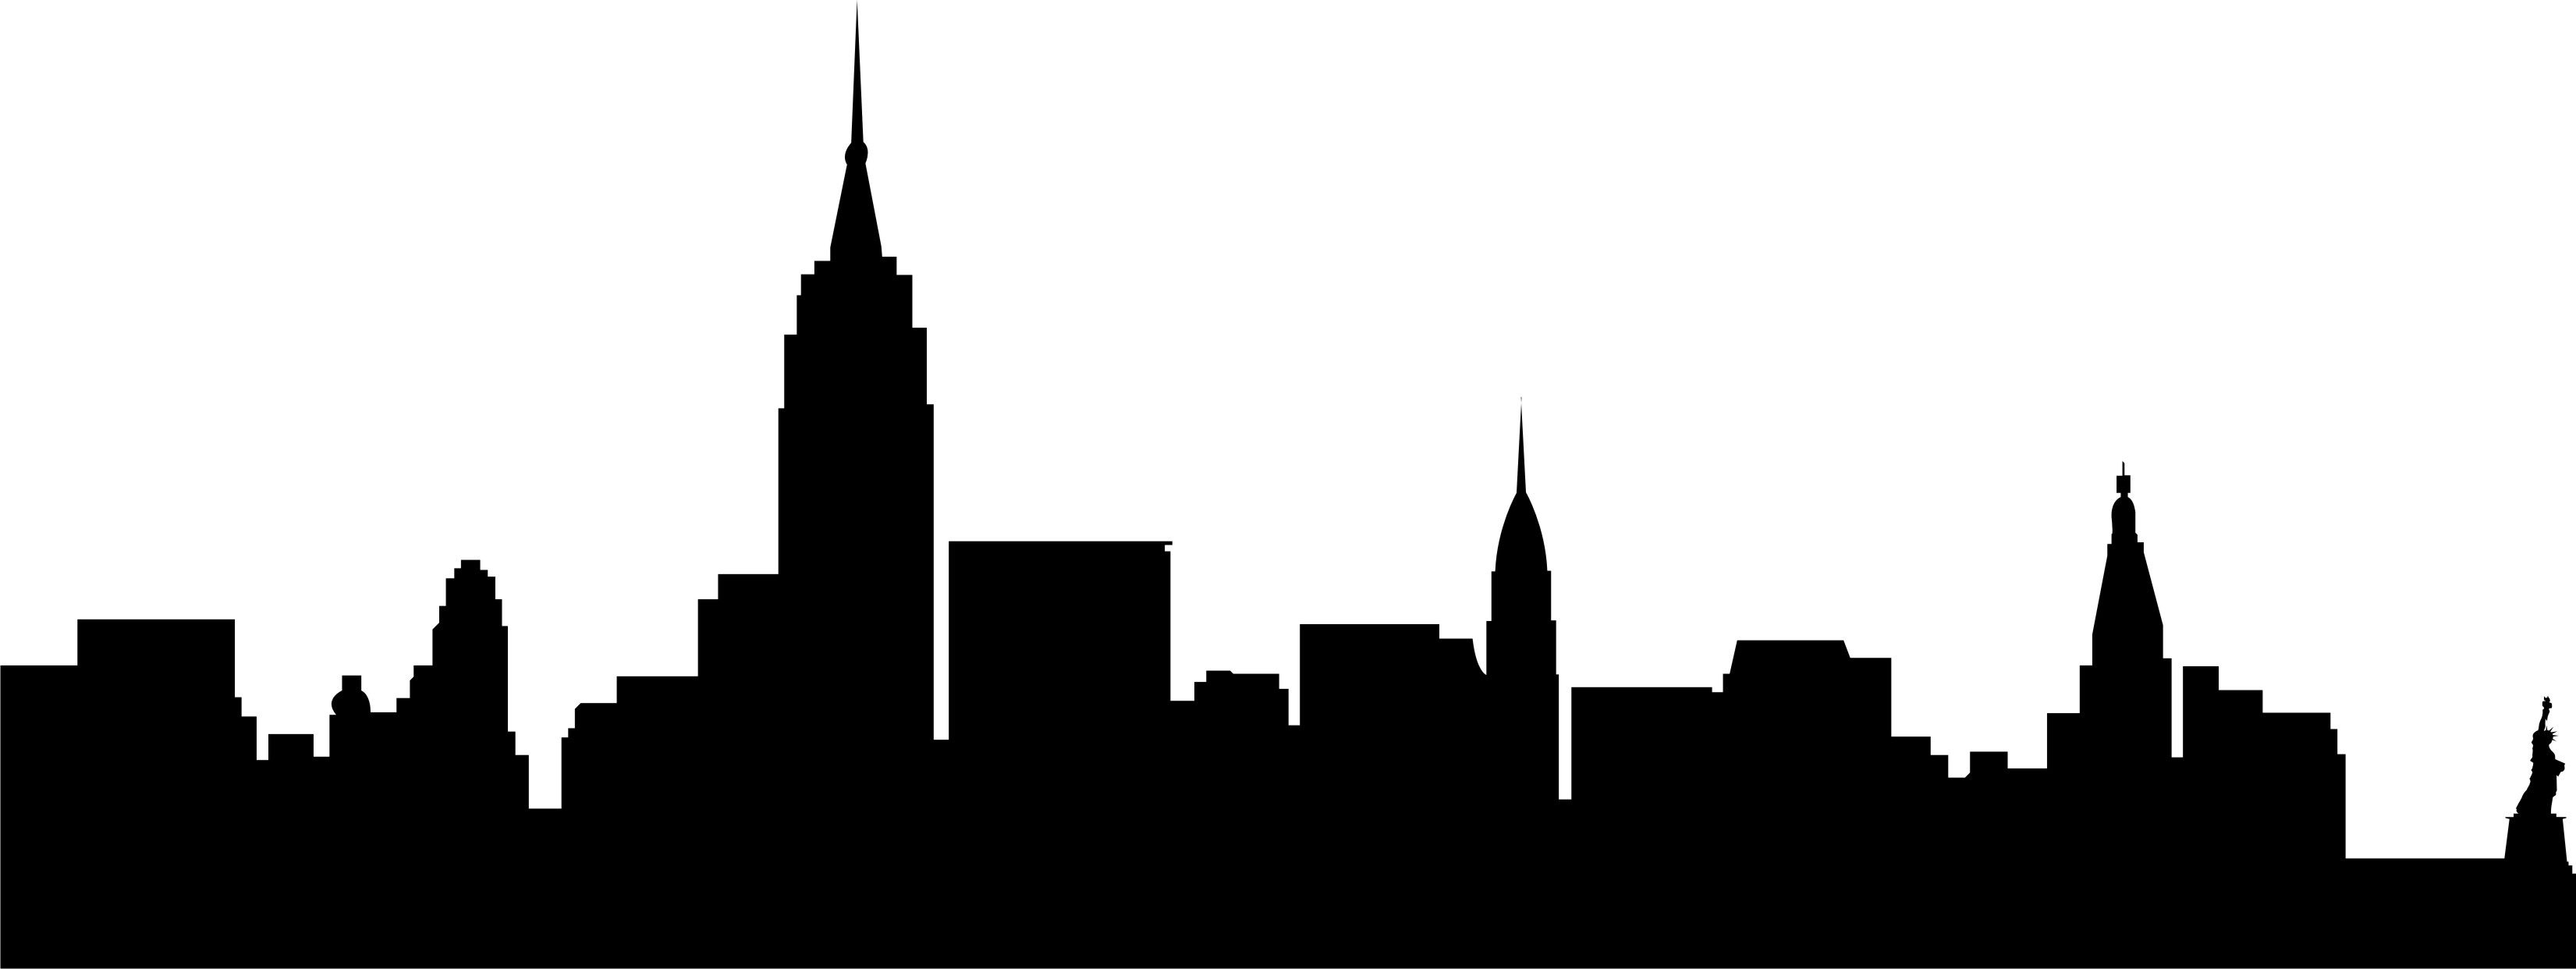 City buildings outline clipart svg download 3302x1242 Cityscape Clipart Nyc Skyline | ADAM/DAVE\'S WEDDING in ... svg download